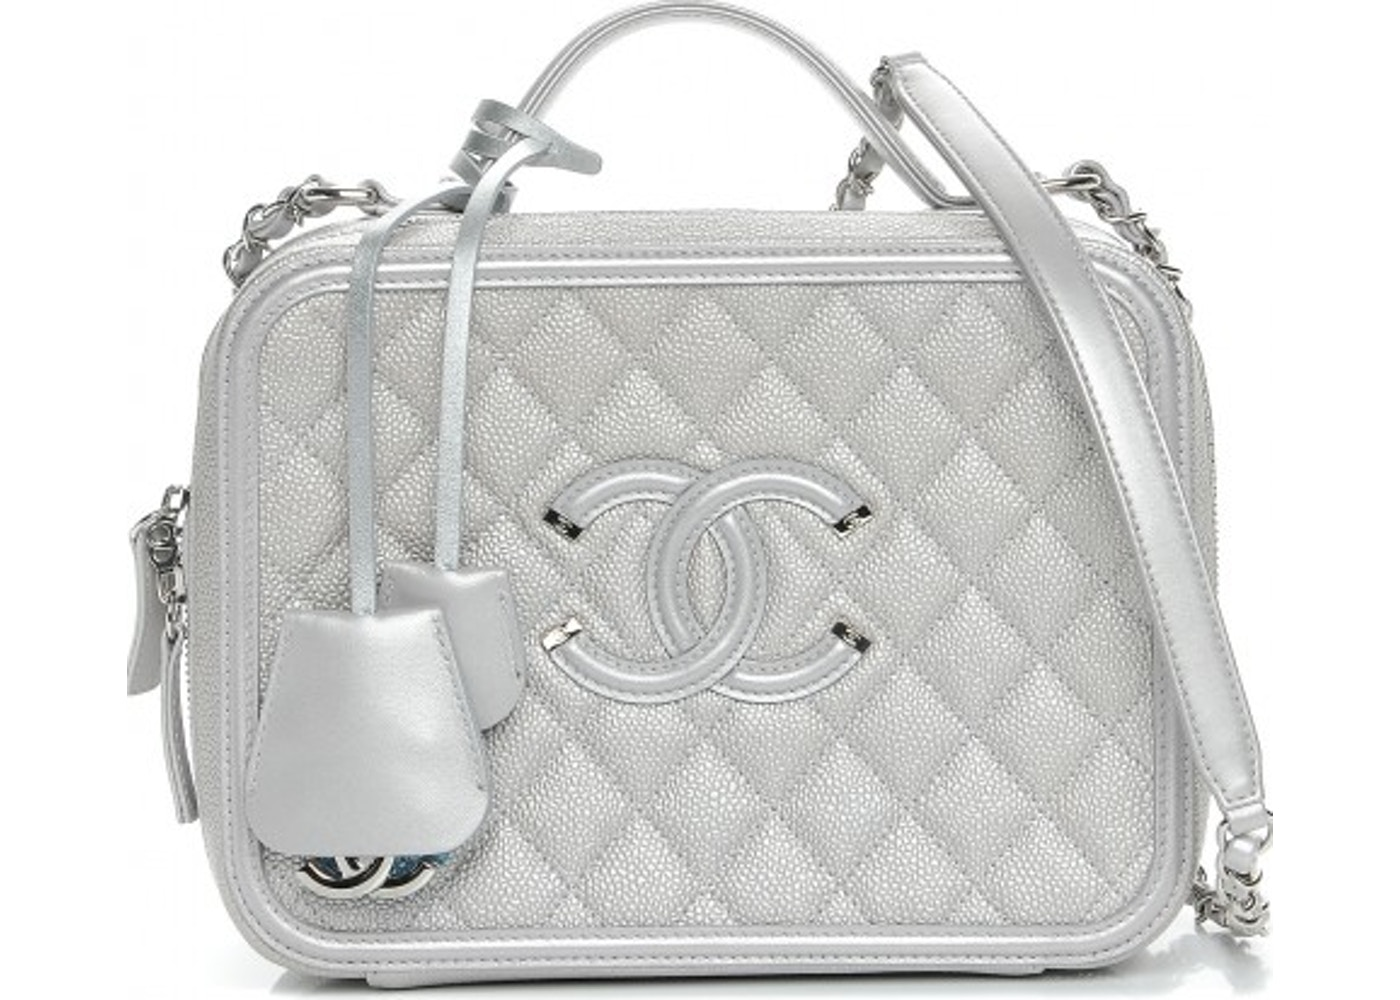 9c4d24a58b70 Chanel CC Filigree Vanity Case Quilted Diamond Metallic Large Silver.  Quilted Diamond Metallic Large Silver